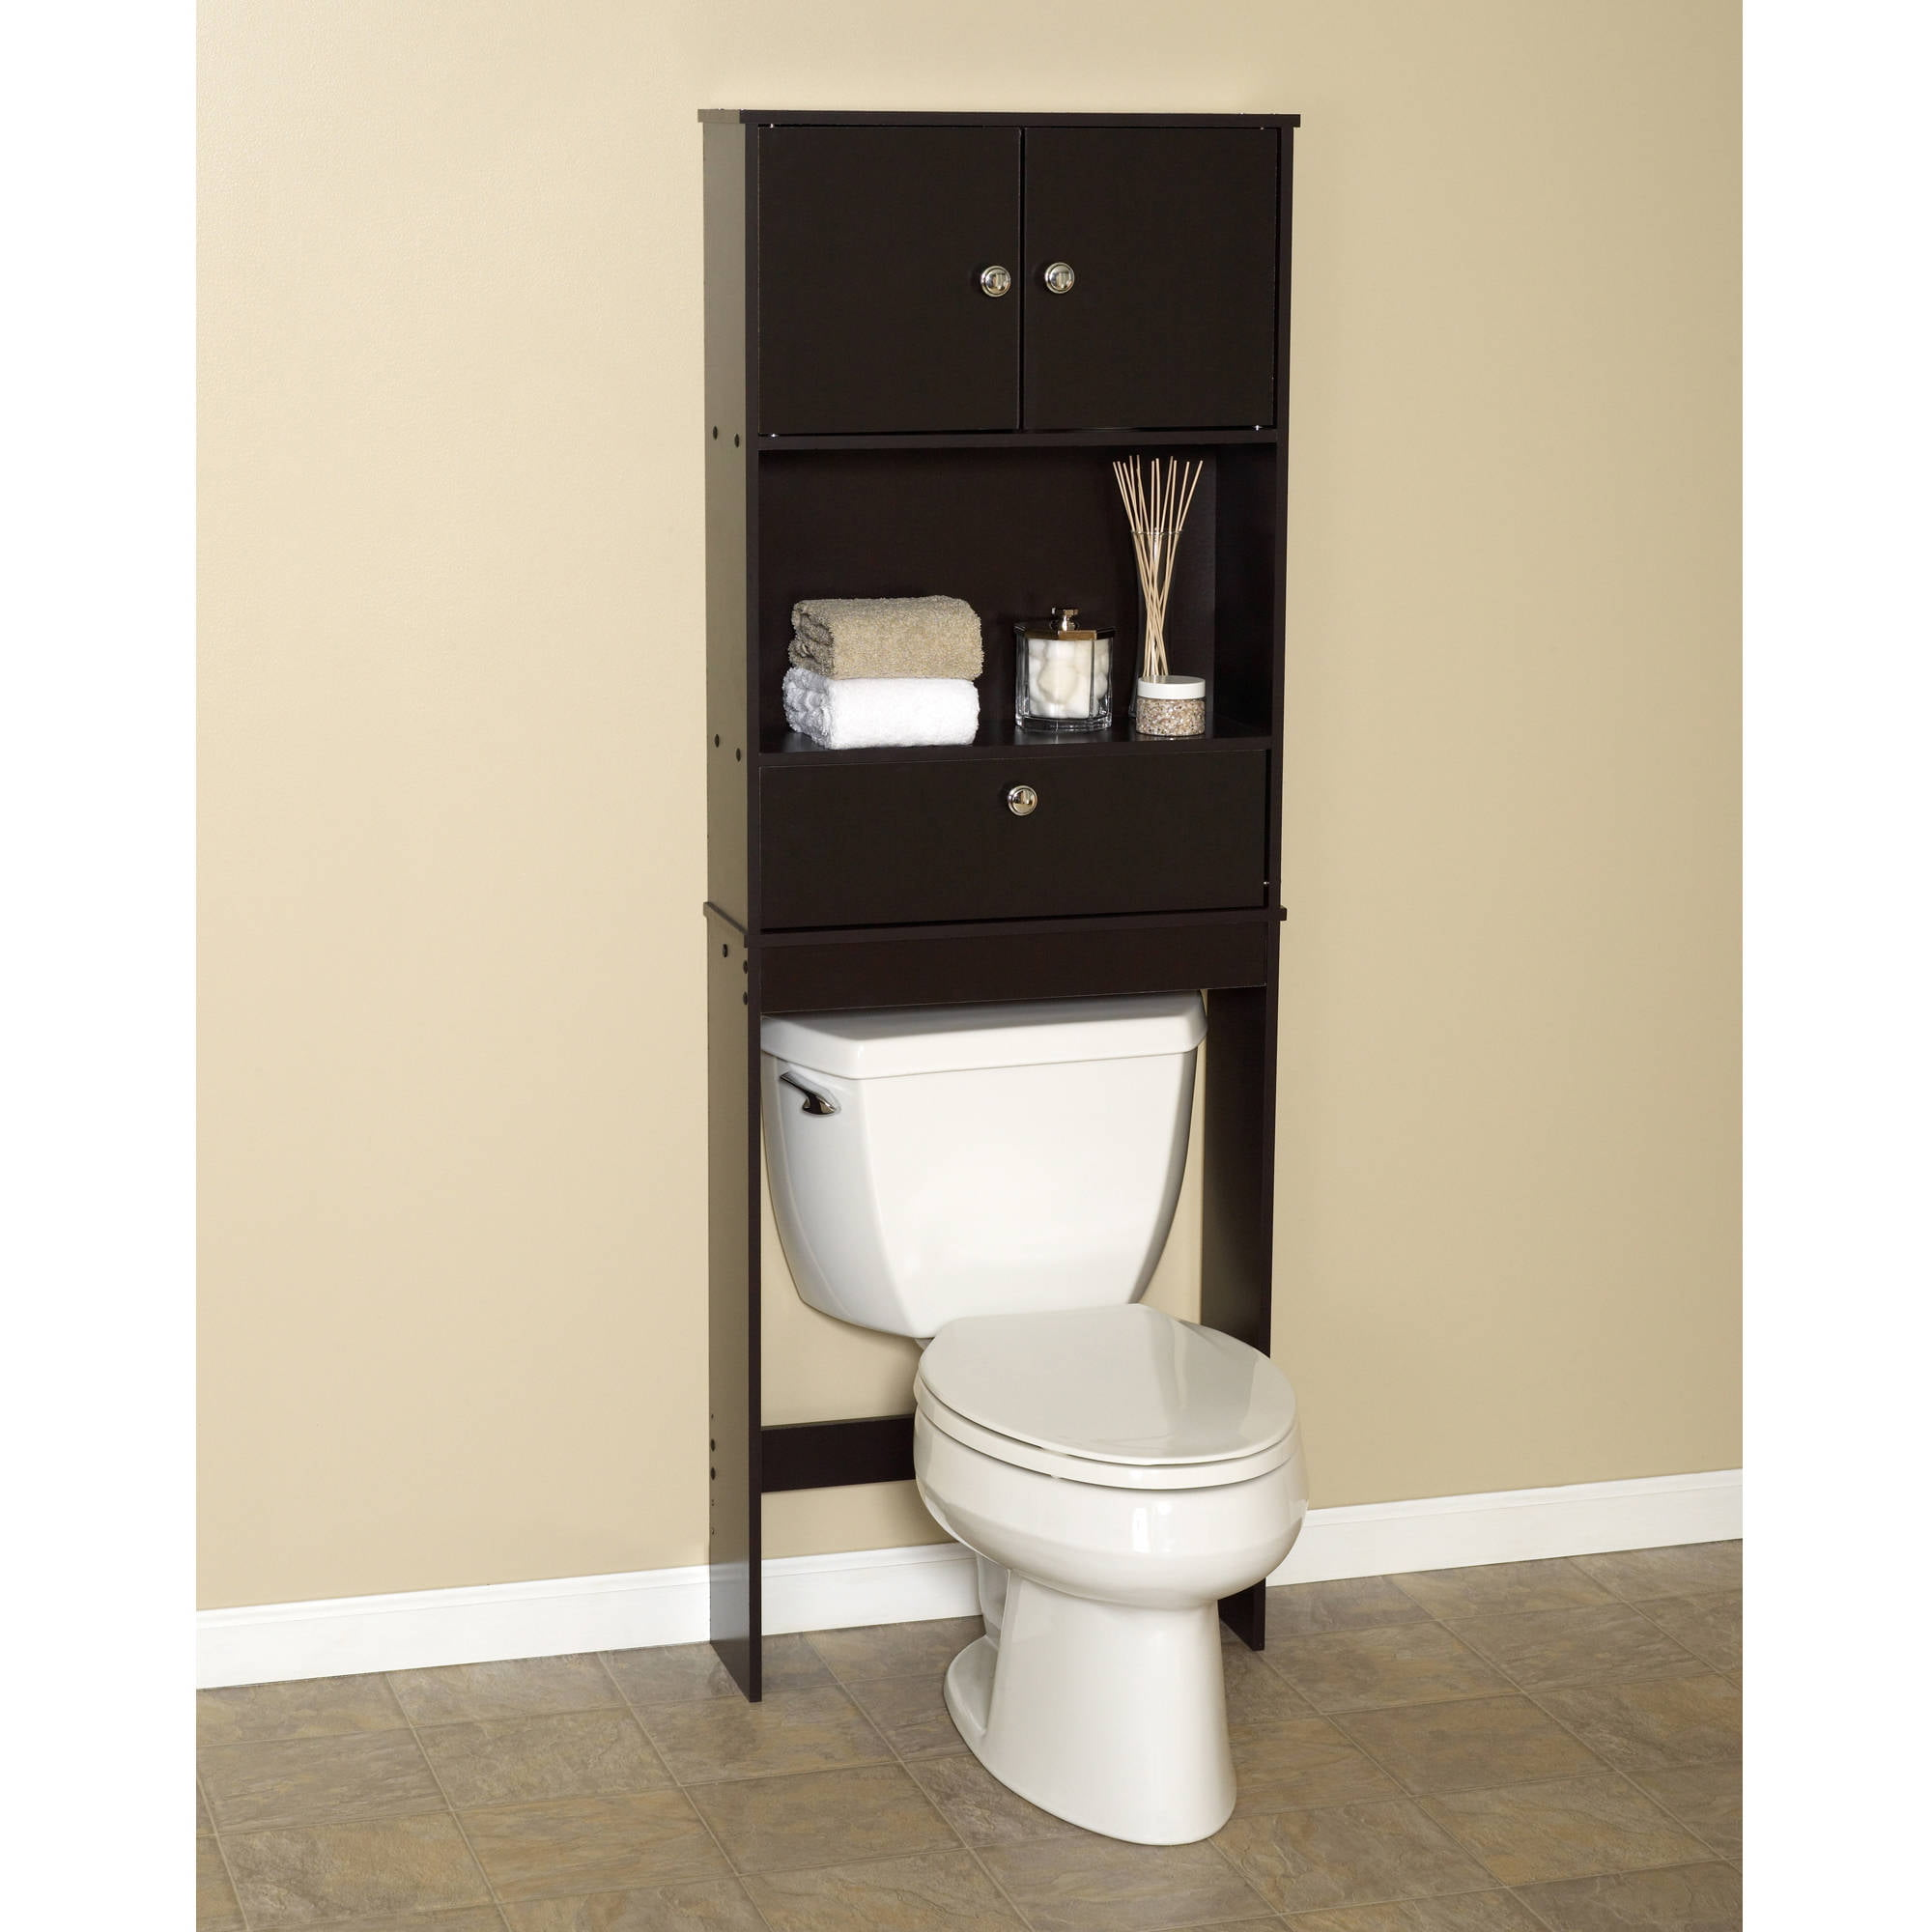 Walmart bathroom storage - Espresso Drop Door Spacesaver With 2 Door Cabinet